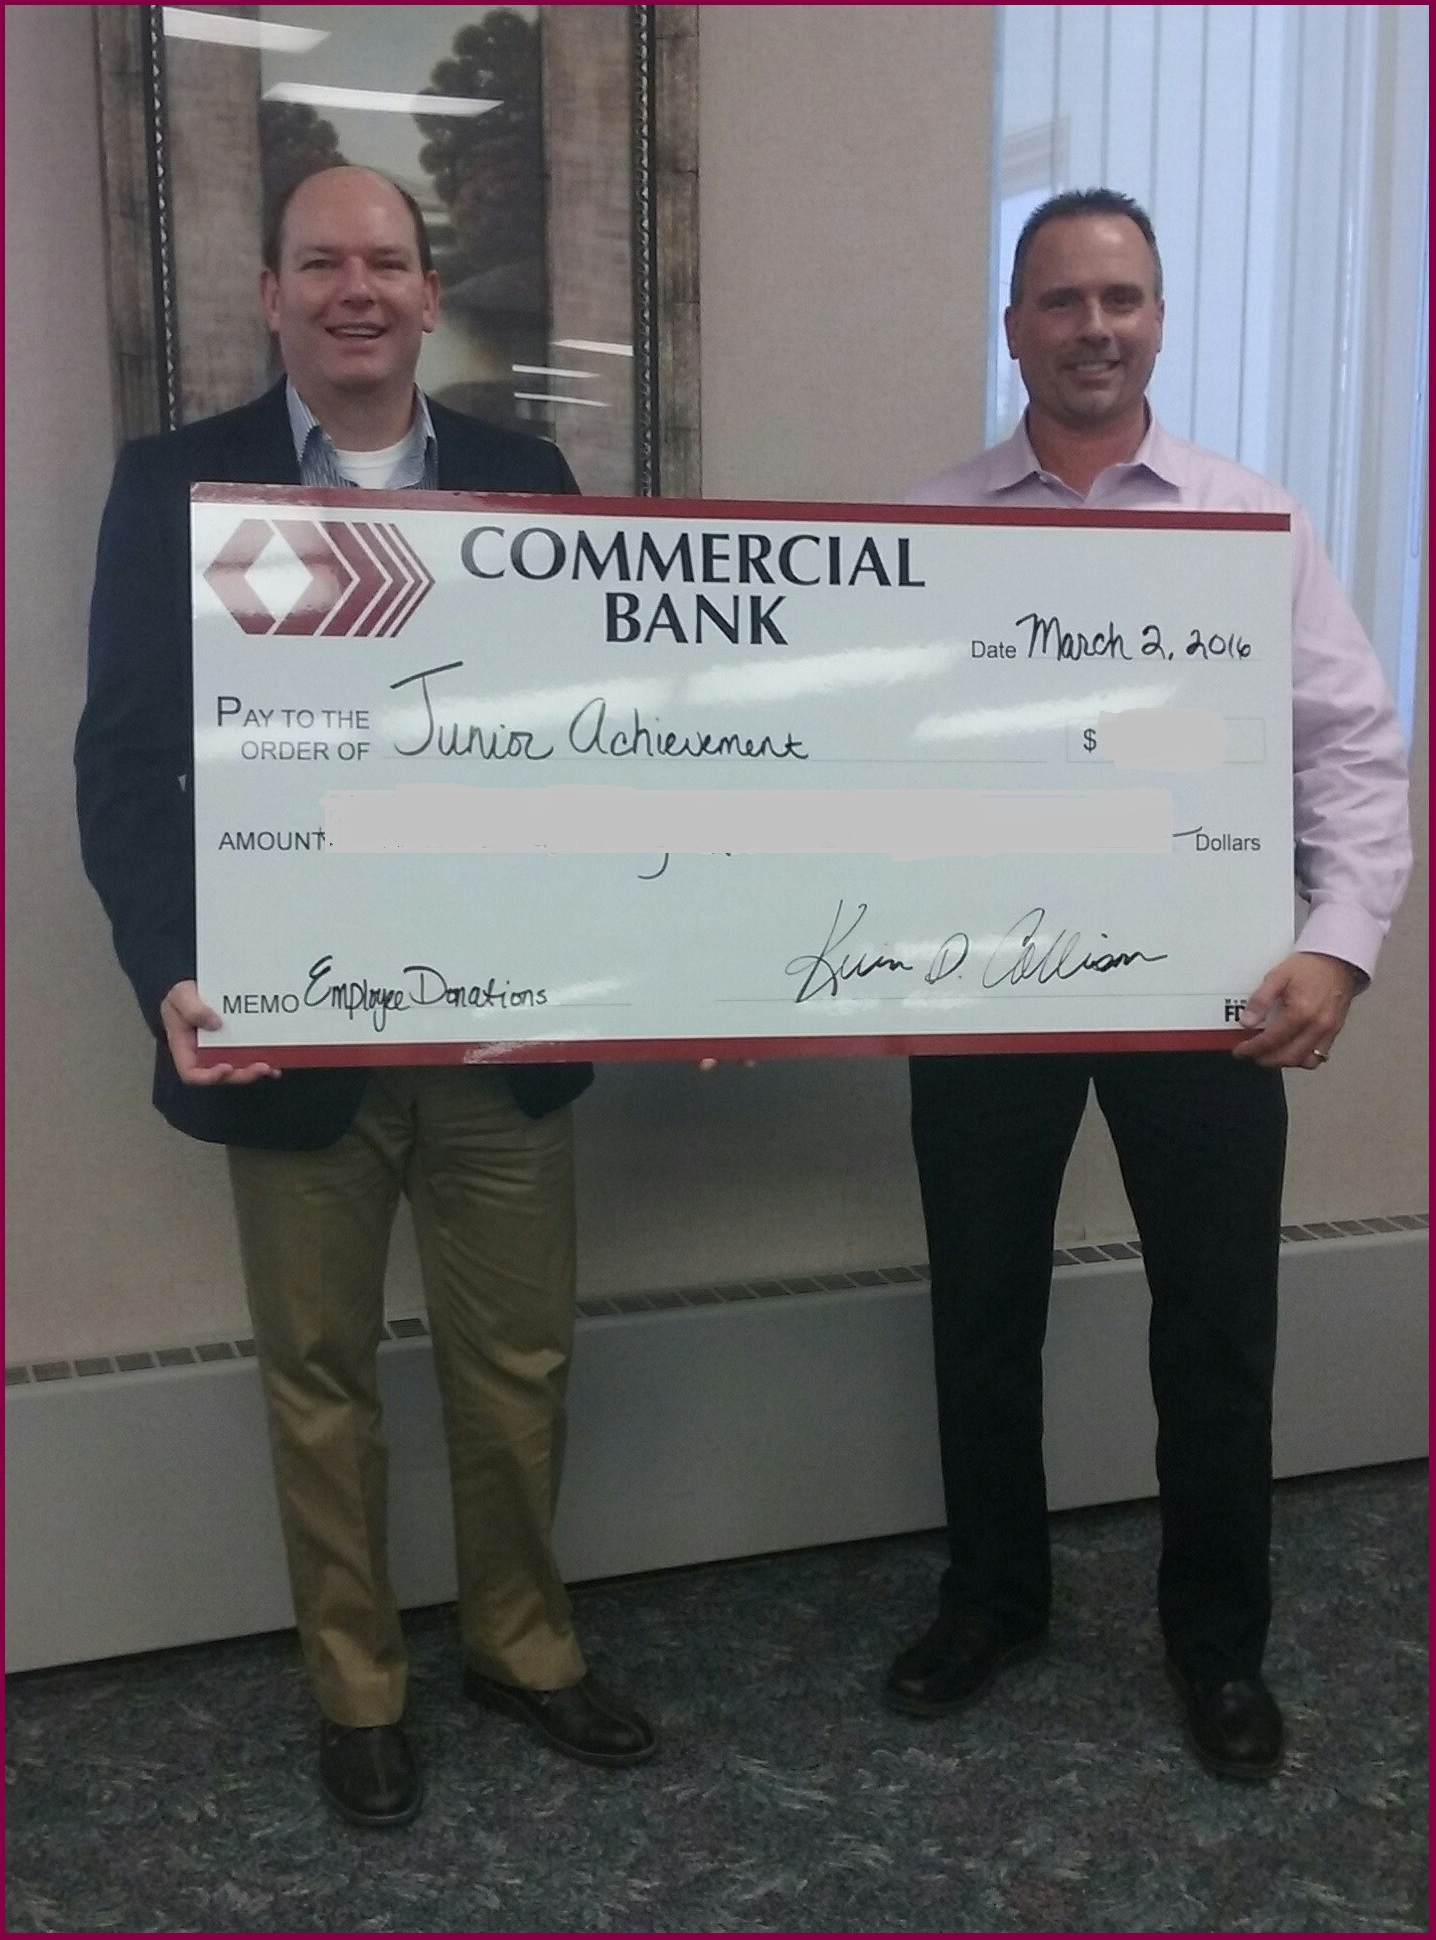 Employees holding a check from Commercial Bank to the Junior Achievement of Central Michigan